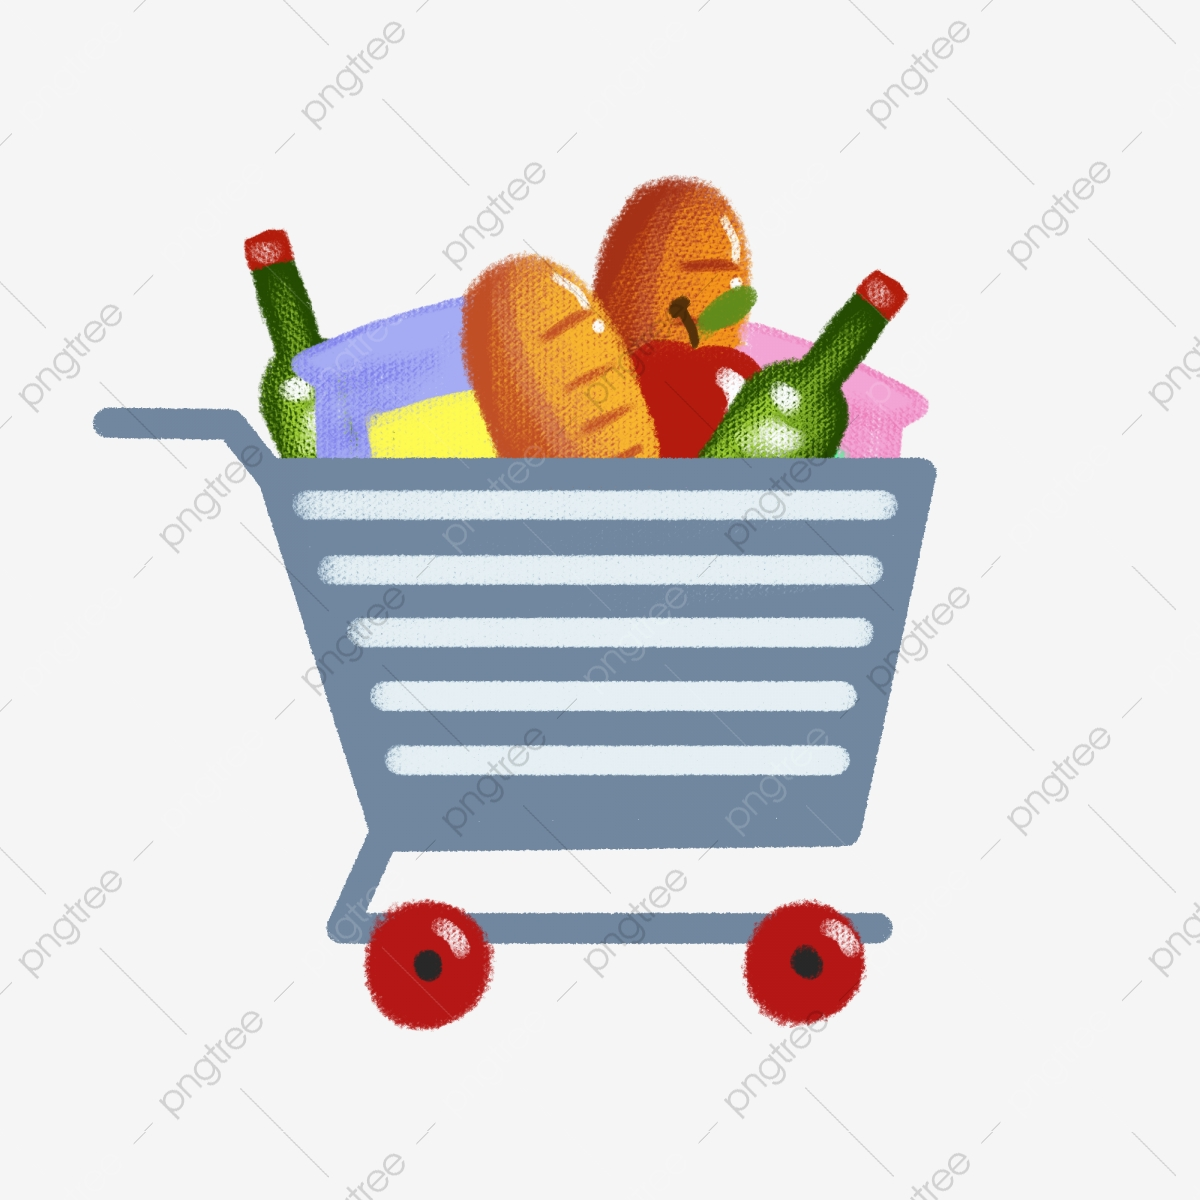 image free Cartoon to buy food. Supermarket clipart mother daughter shopping.